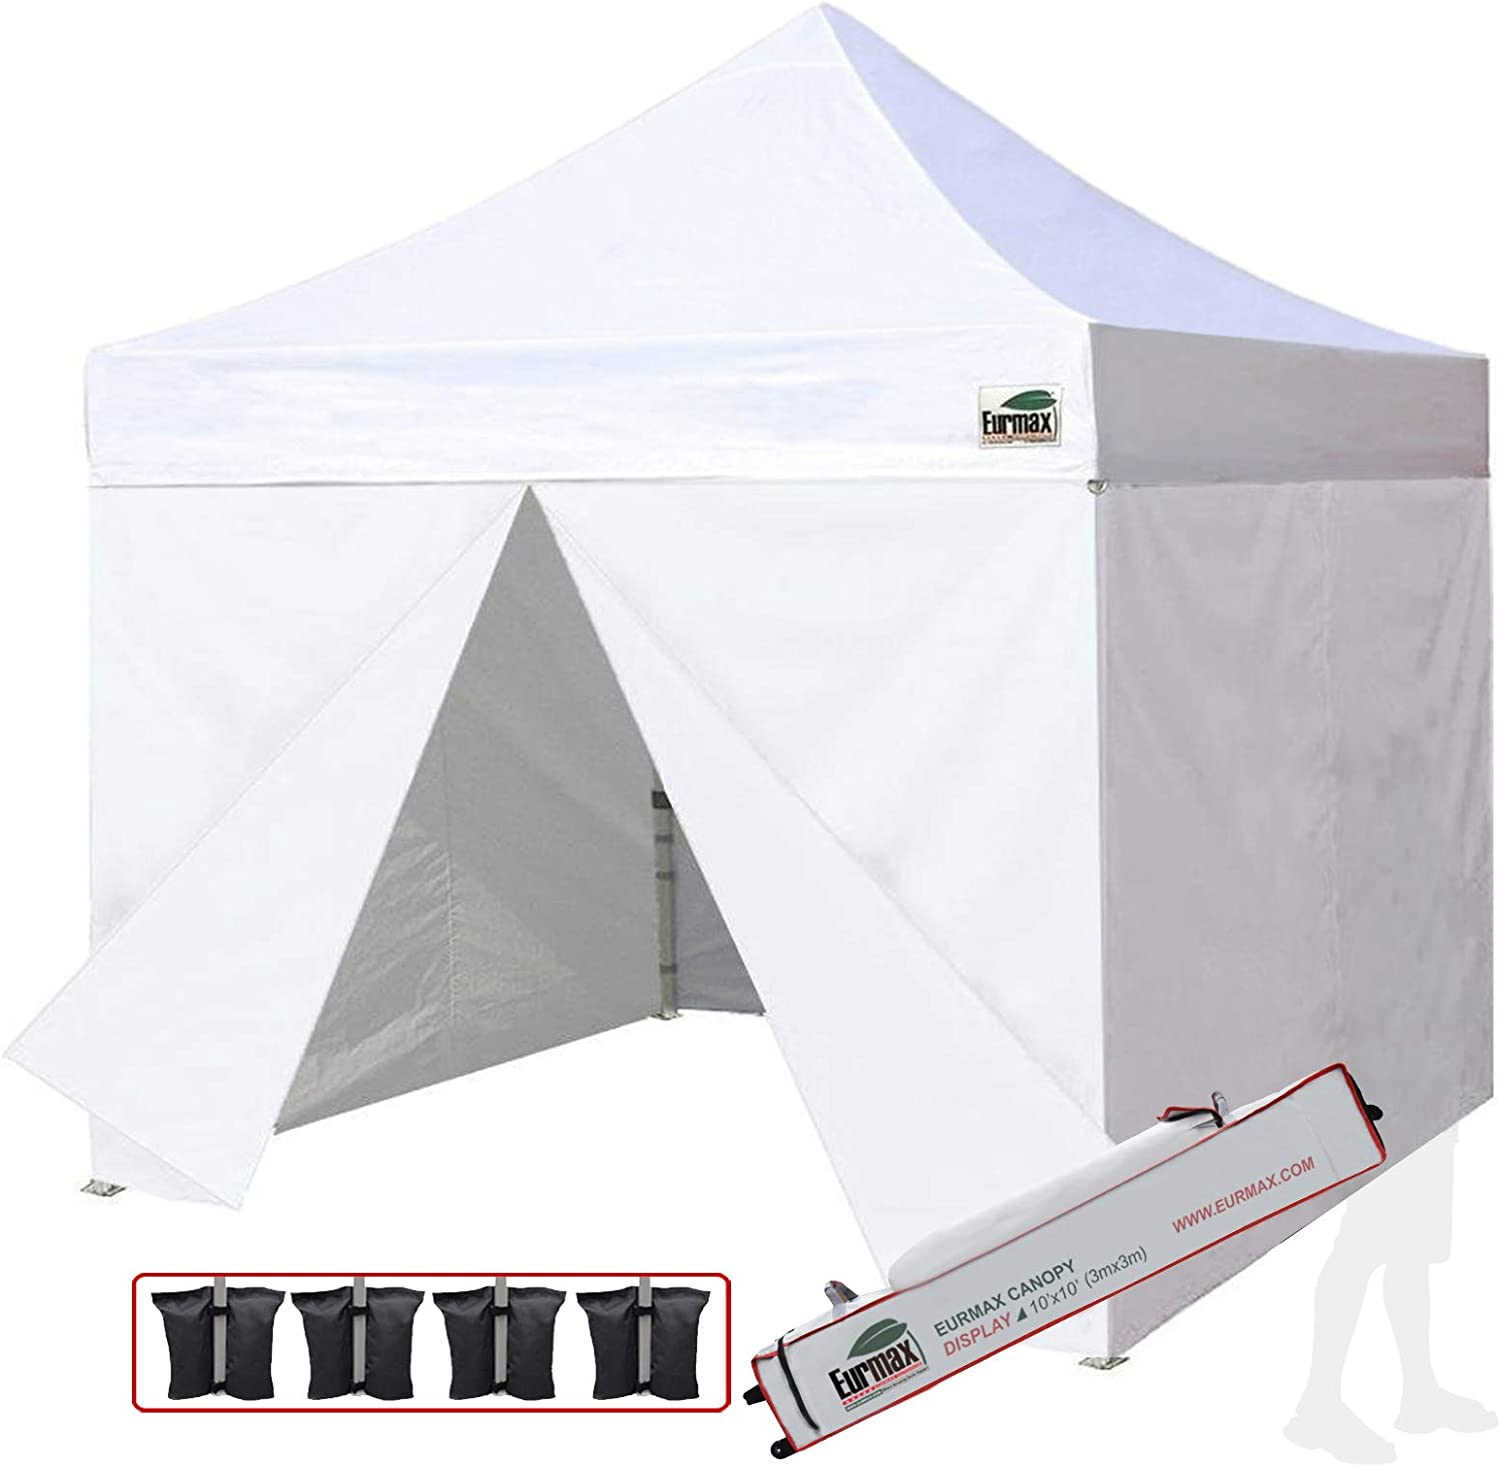 Eurmax 10×10 Ez Pop up Canopy, Commercial Party Canopies, Outdoor Shelter with 4 Zippered Sidewalls and Roller bag,Bonus 4 sandbags White